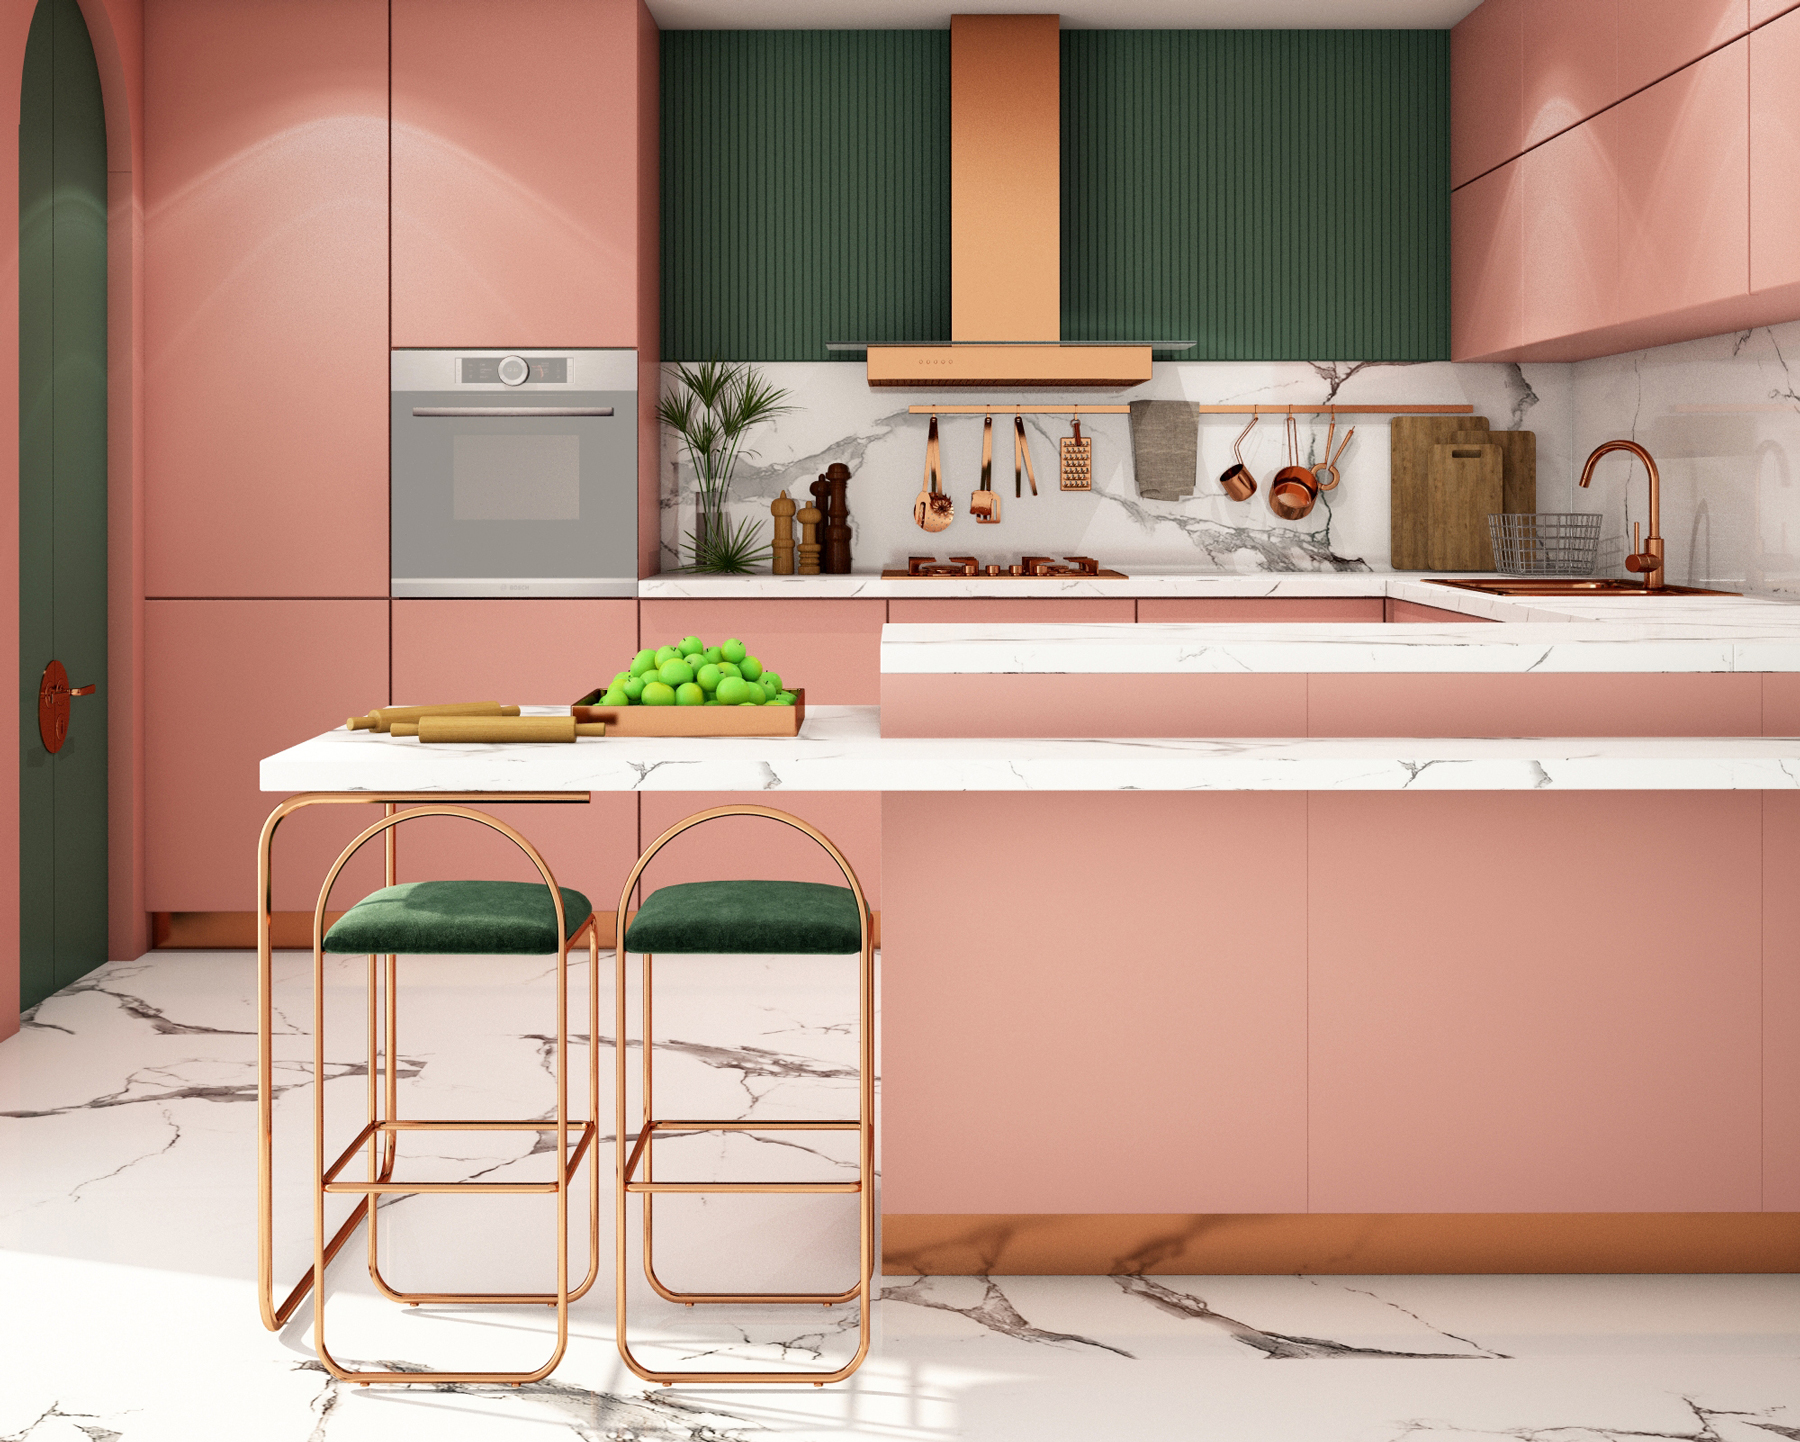 How to paint kitchen cabinets - step-by-step guide for painting cabinets